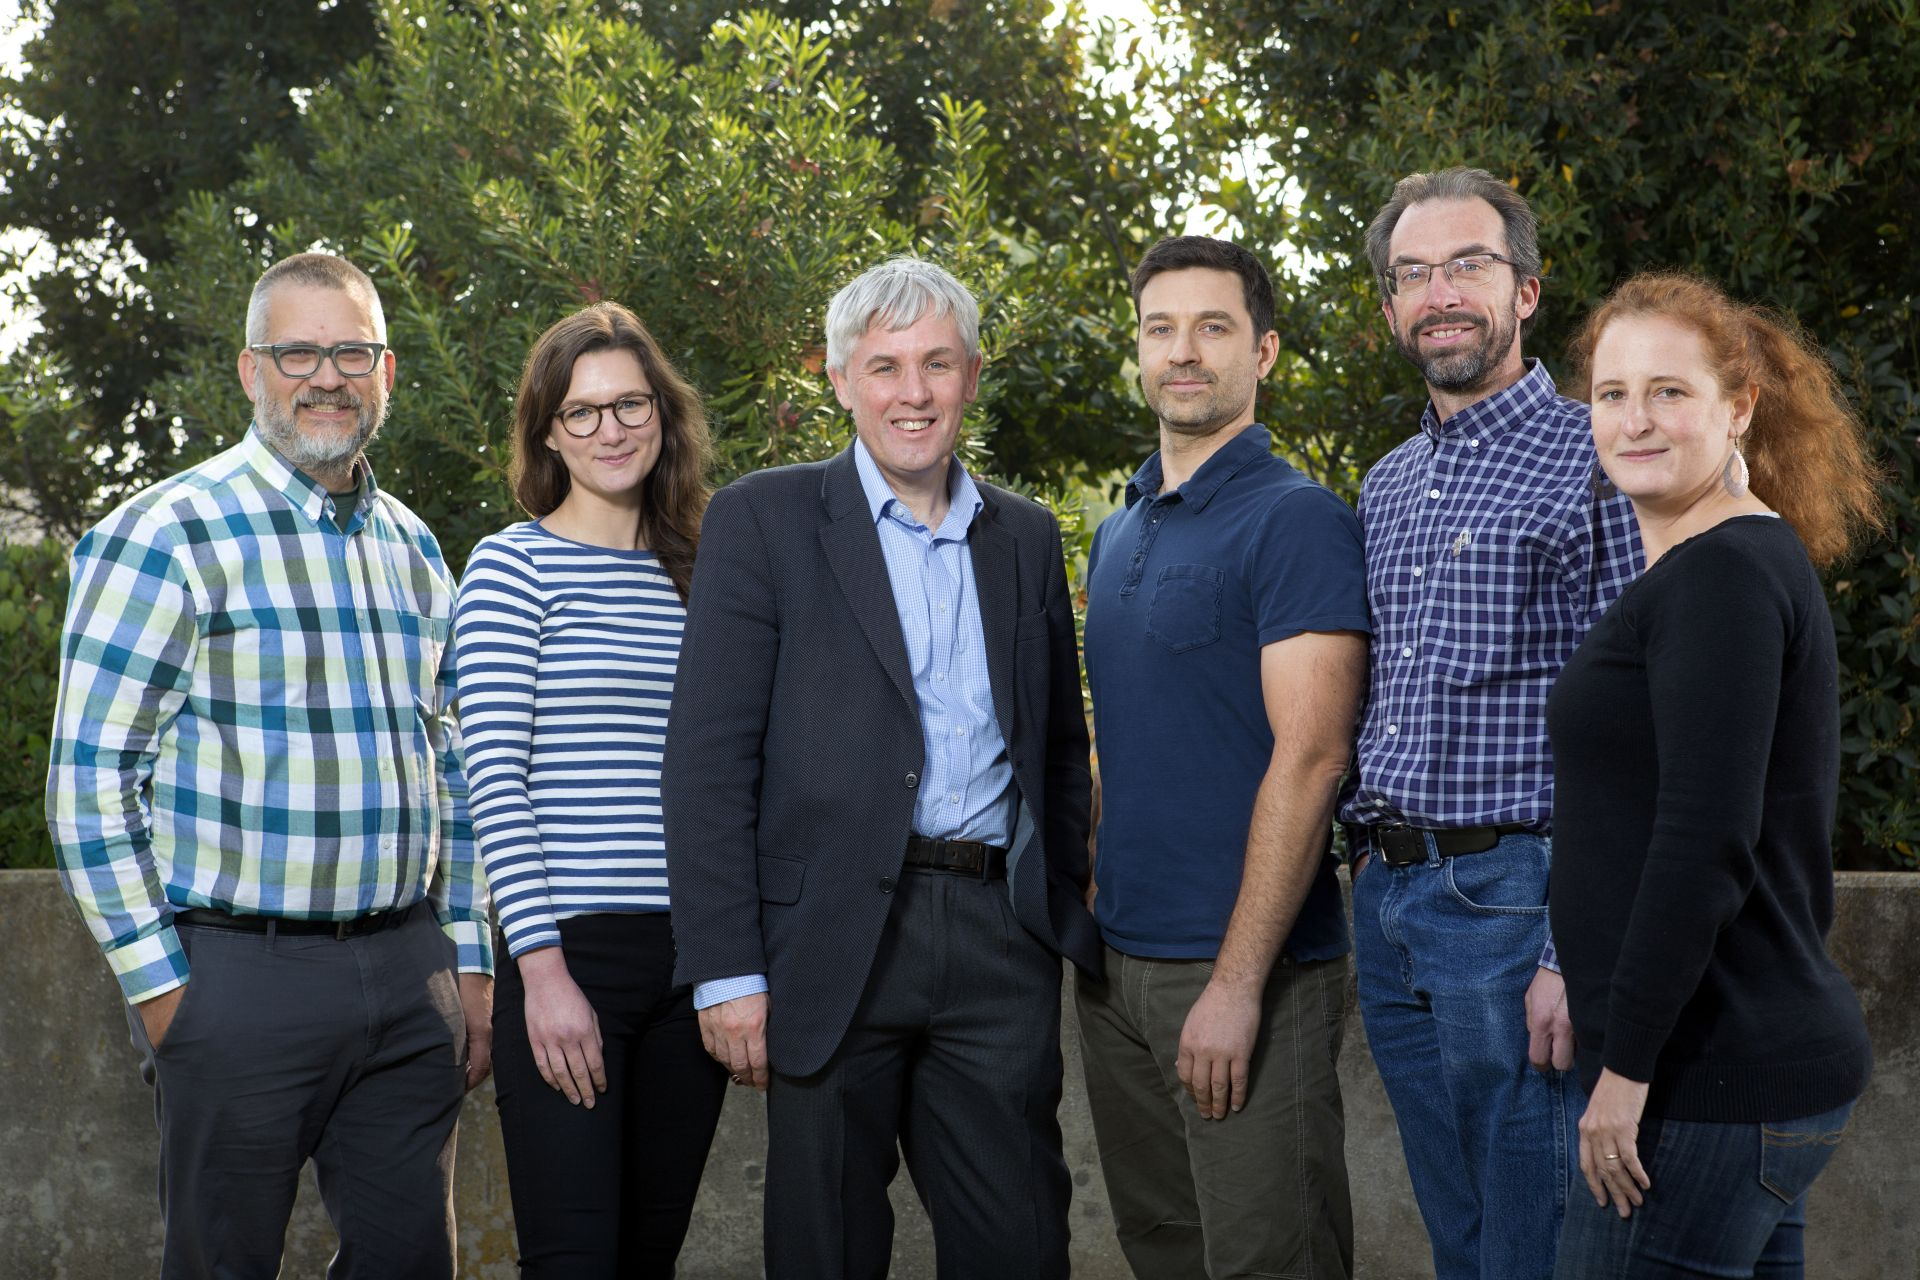 Professor of Atmospheric Chemistry at the University of Leeds Dwayne Heard, third from left, recently visited Sandia National Laboratories' Combustion Research Center. From left, Craig Taatjes, Rebecca Caravan, Heard, Lenny Sheps, David Osborn and Judit Zador. (Photo by Dino Vournas/Sandia)